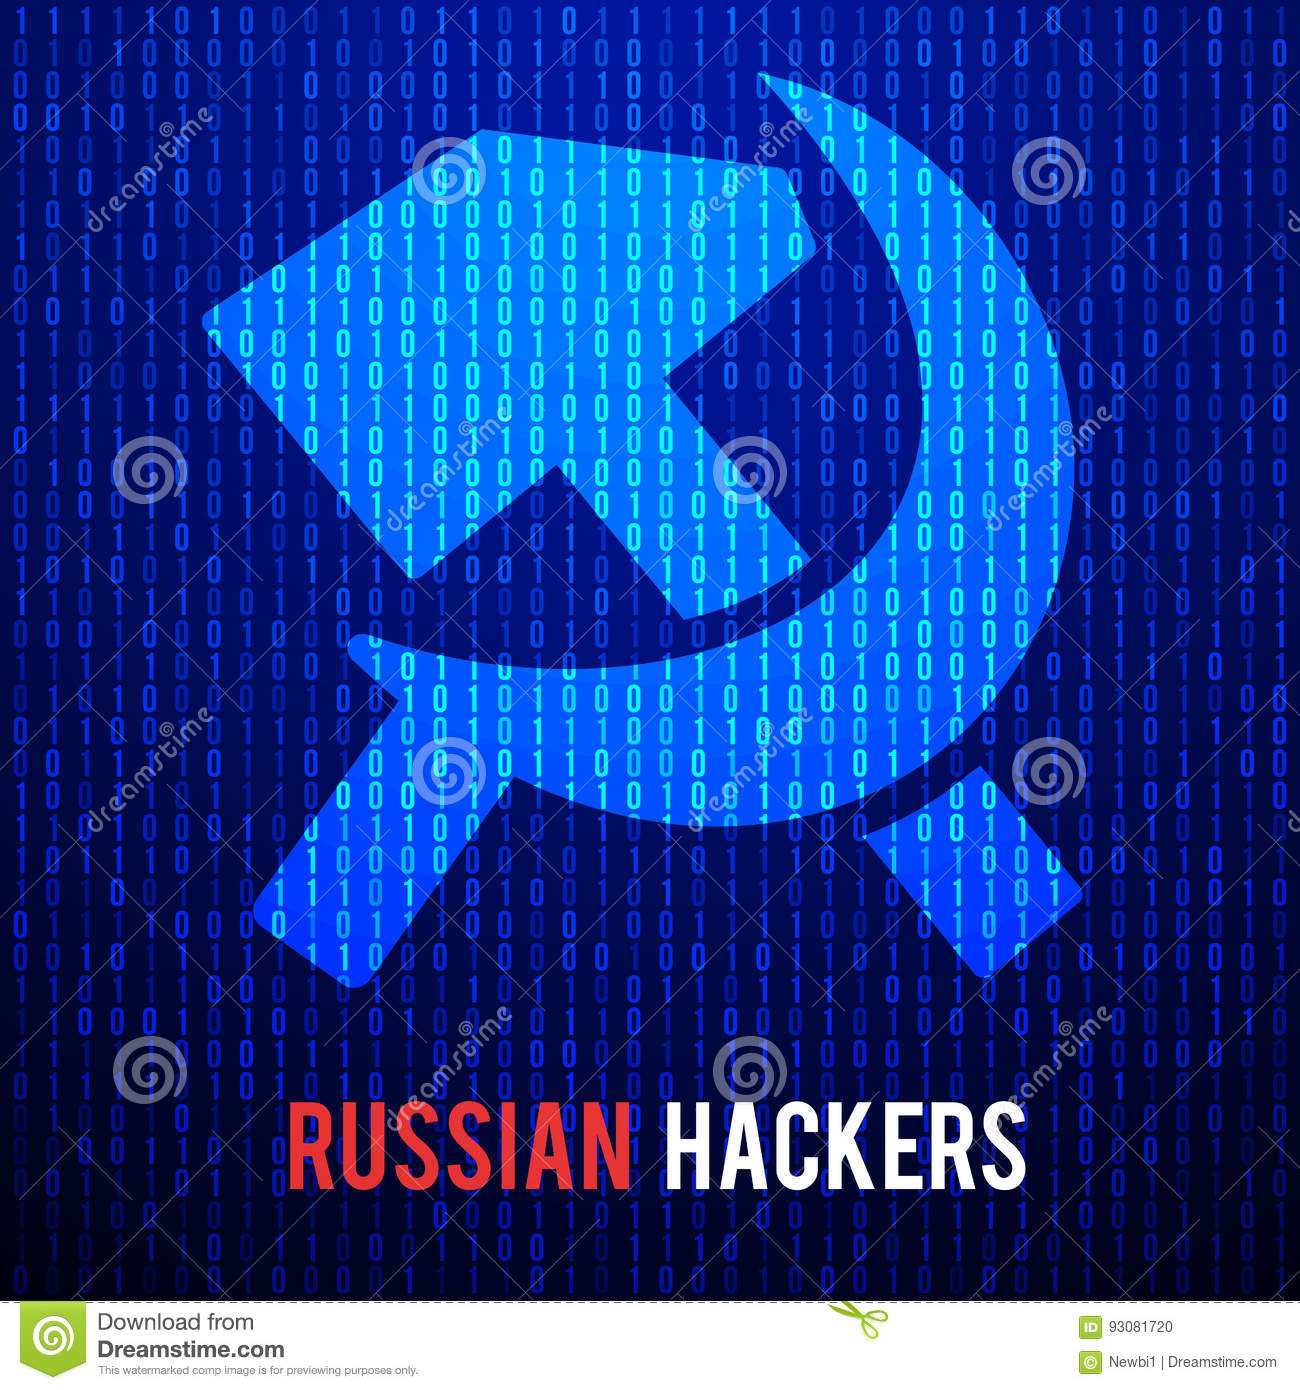 Russian hackers abstract matrix background stock vector russian hackers abstract matrix background biocorpaavc Gallery